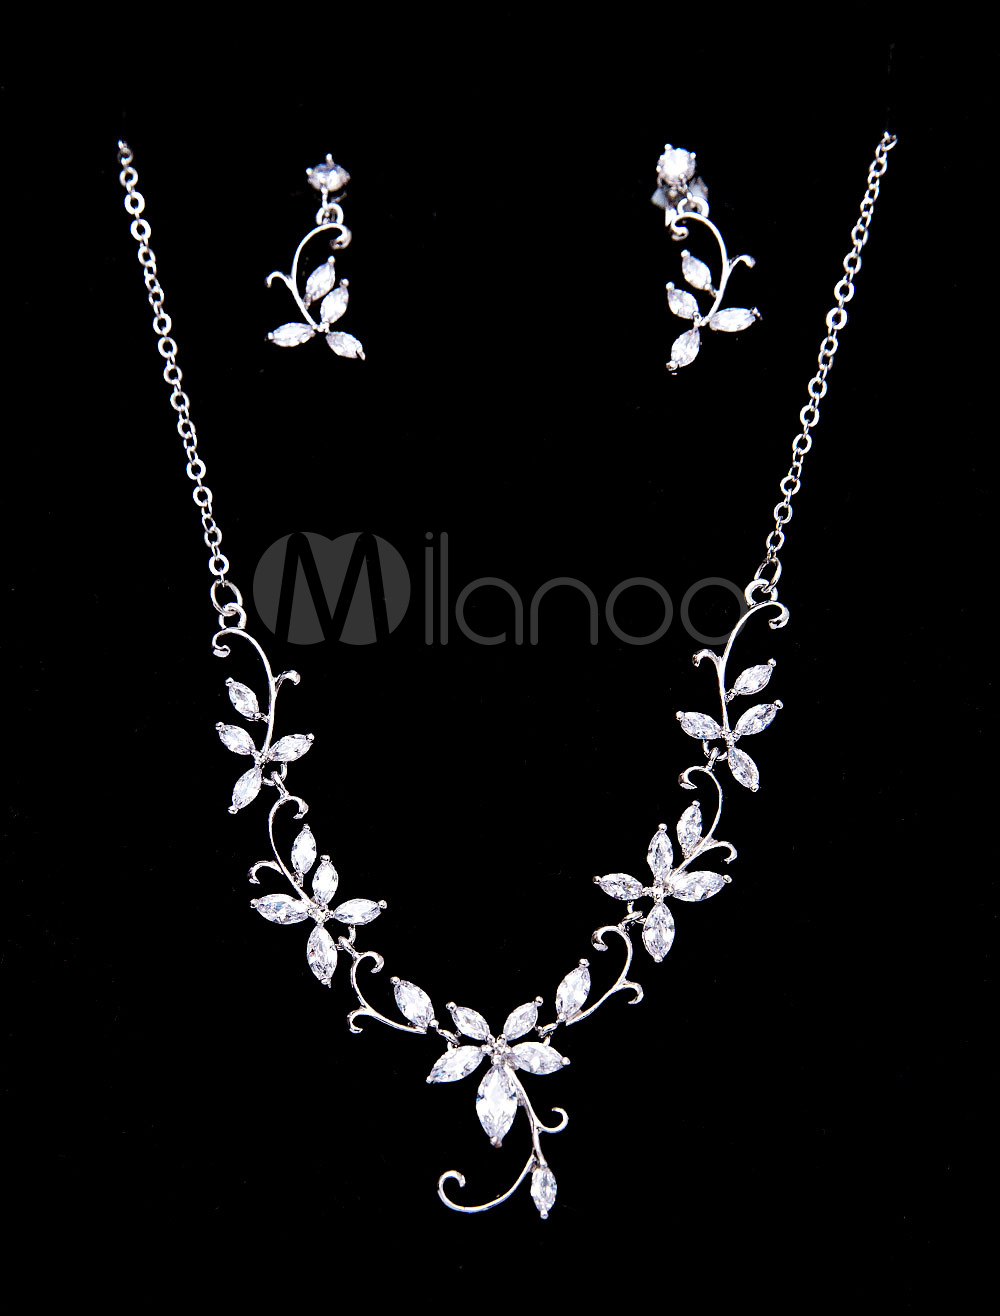 Wedding Jewelry Set Chain Beaded Bridal Silver Necklace With Clip On Earrings